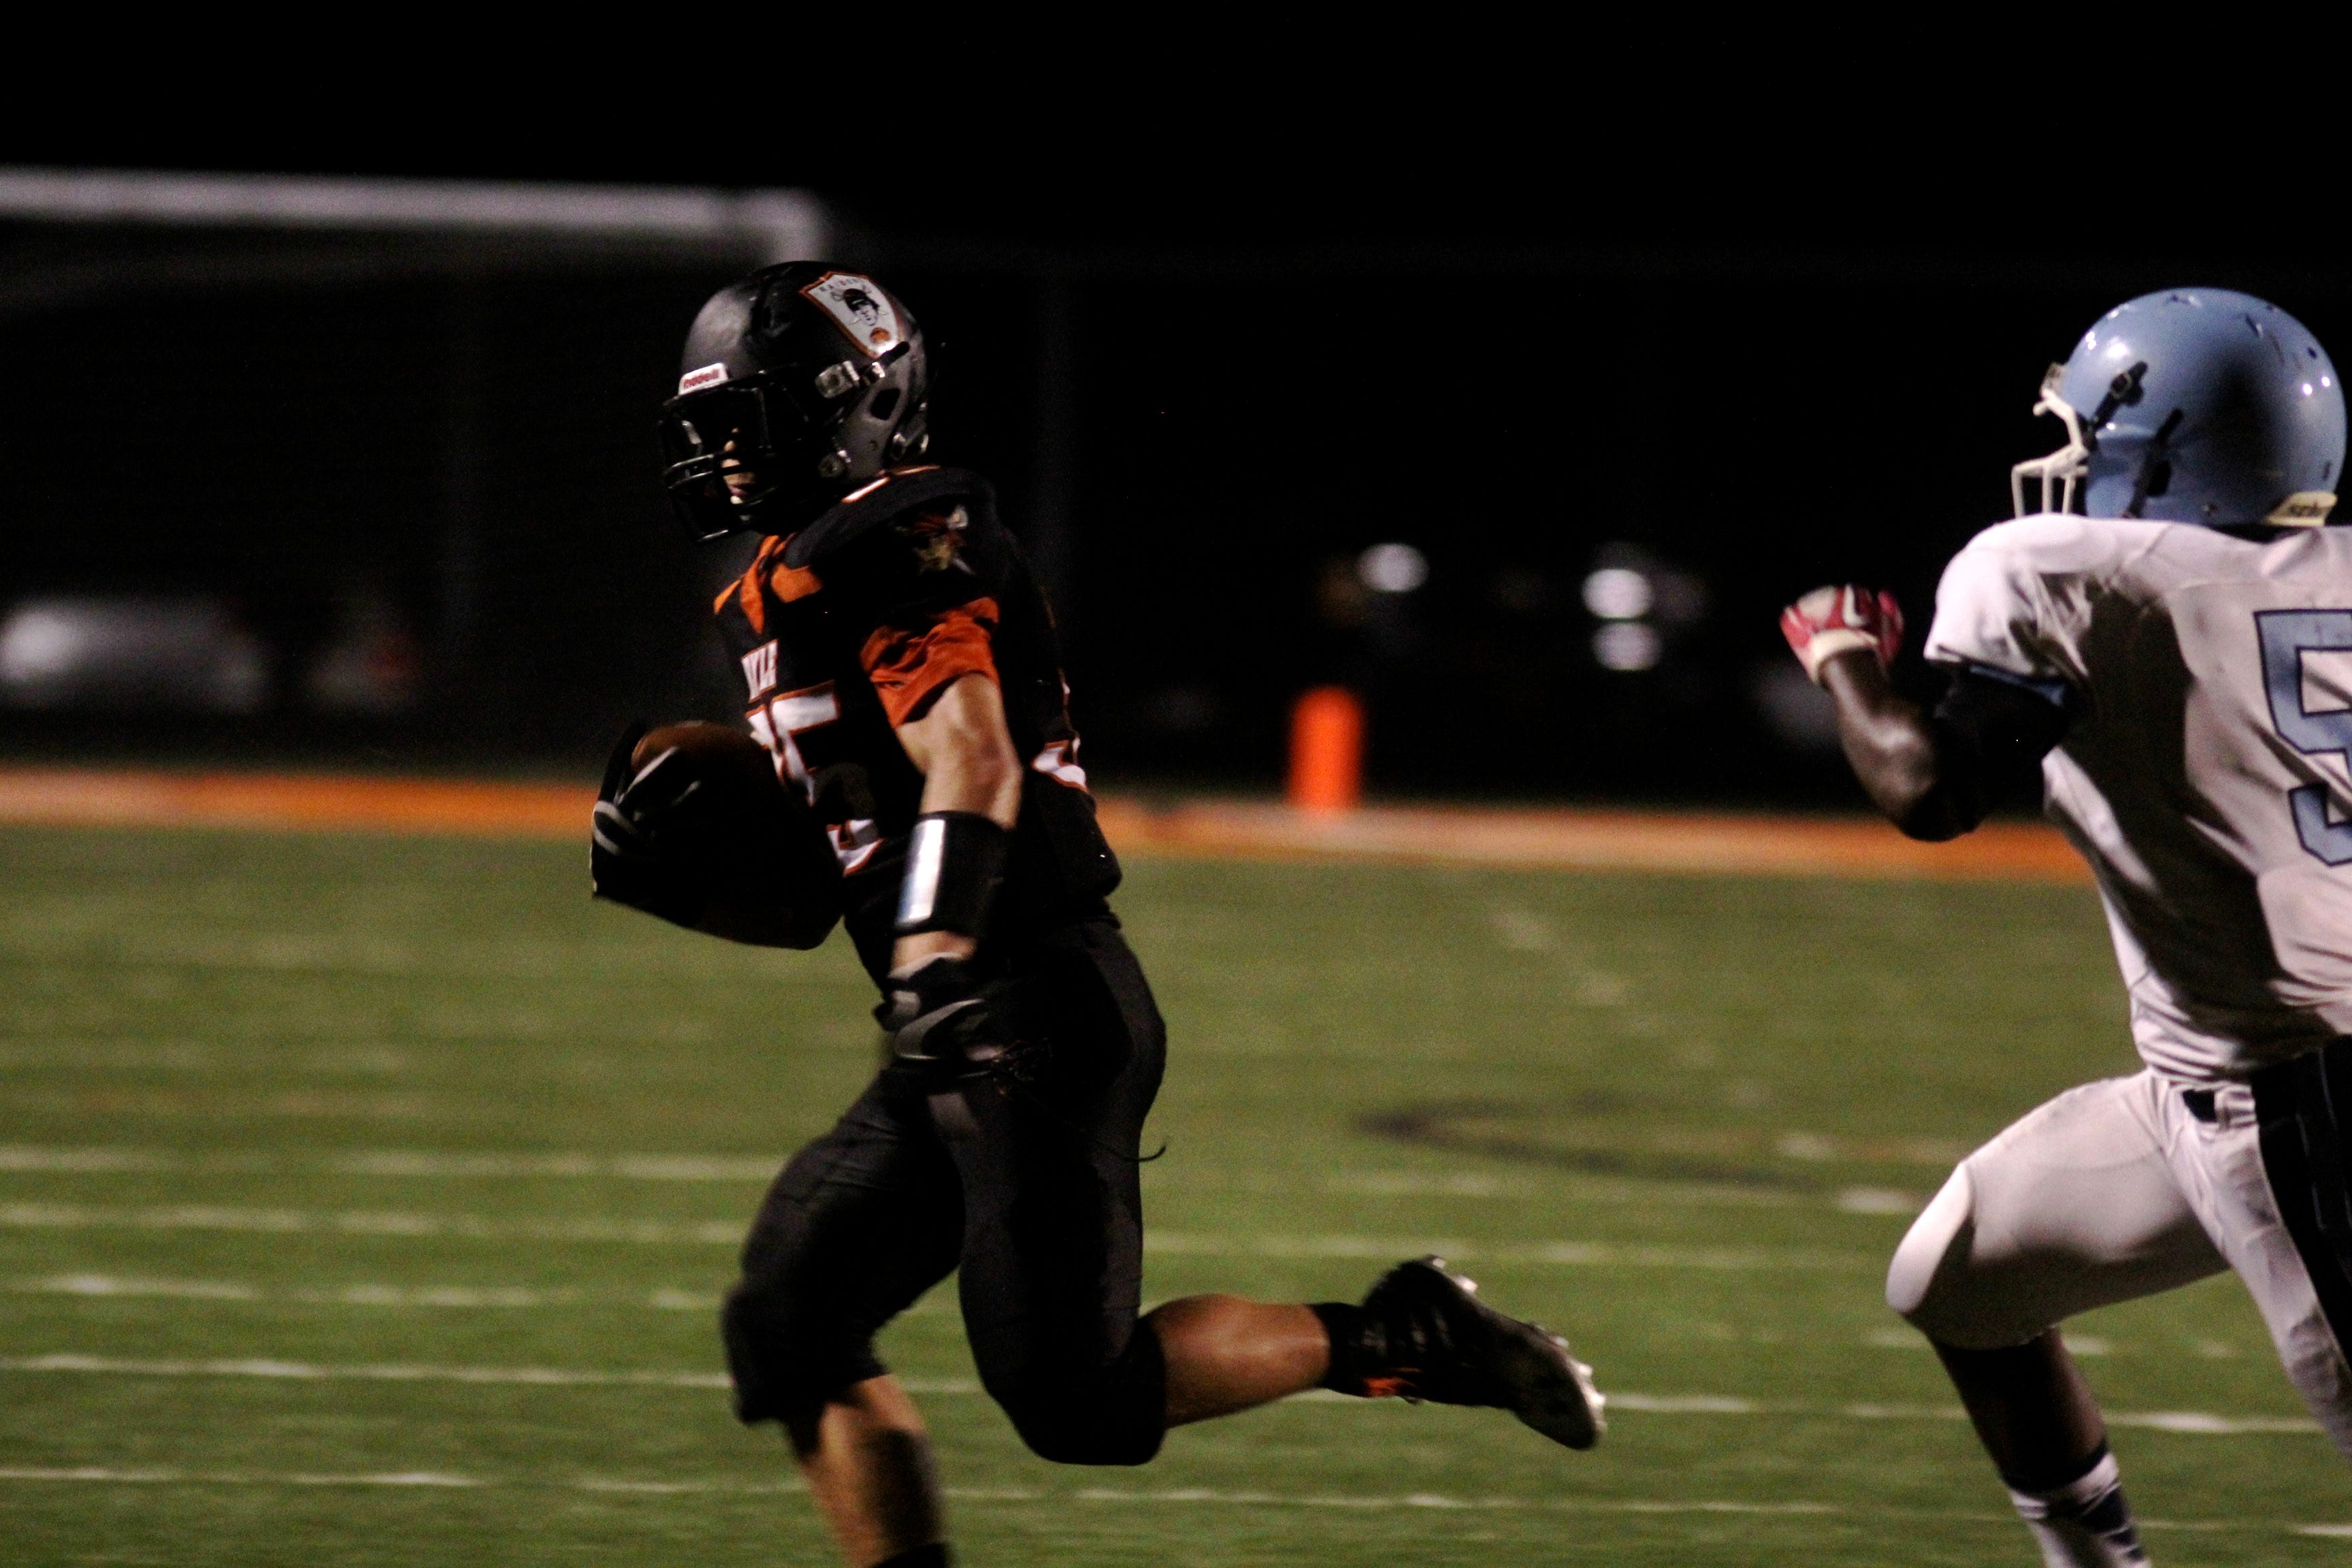 Ryle RB Mitchell Bateman looks for running room in 2013.